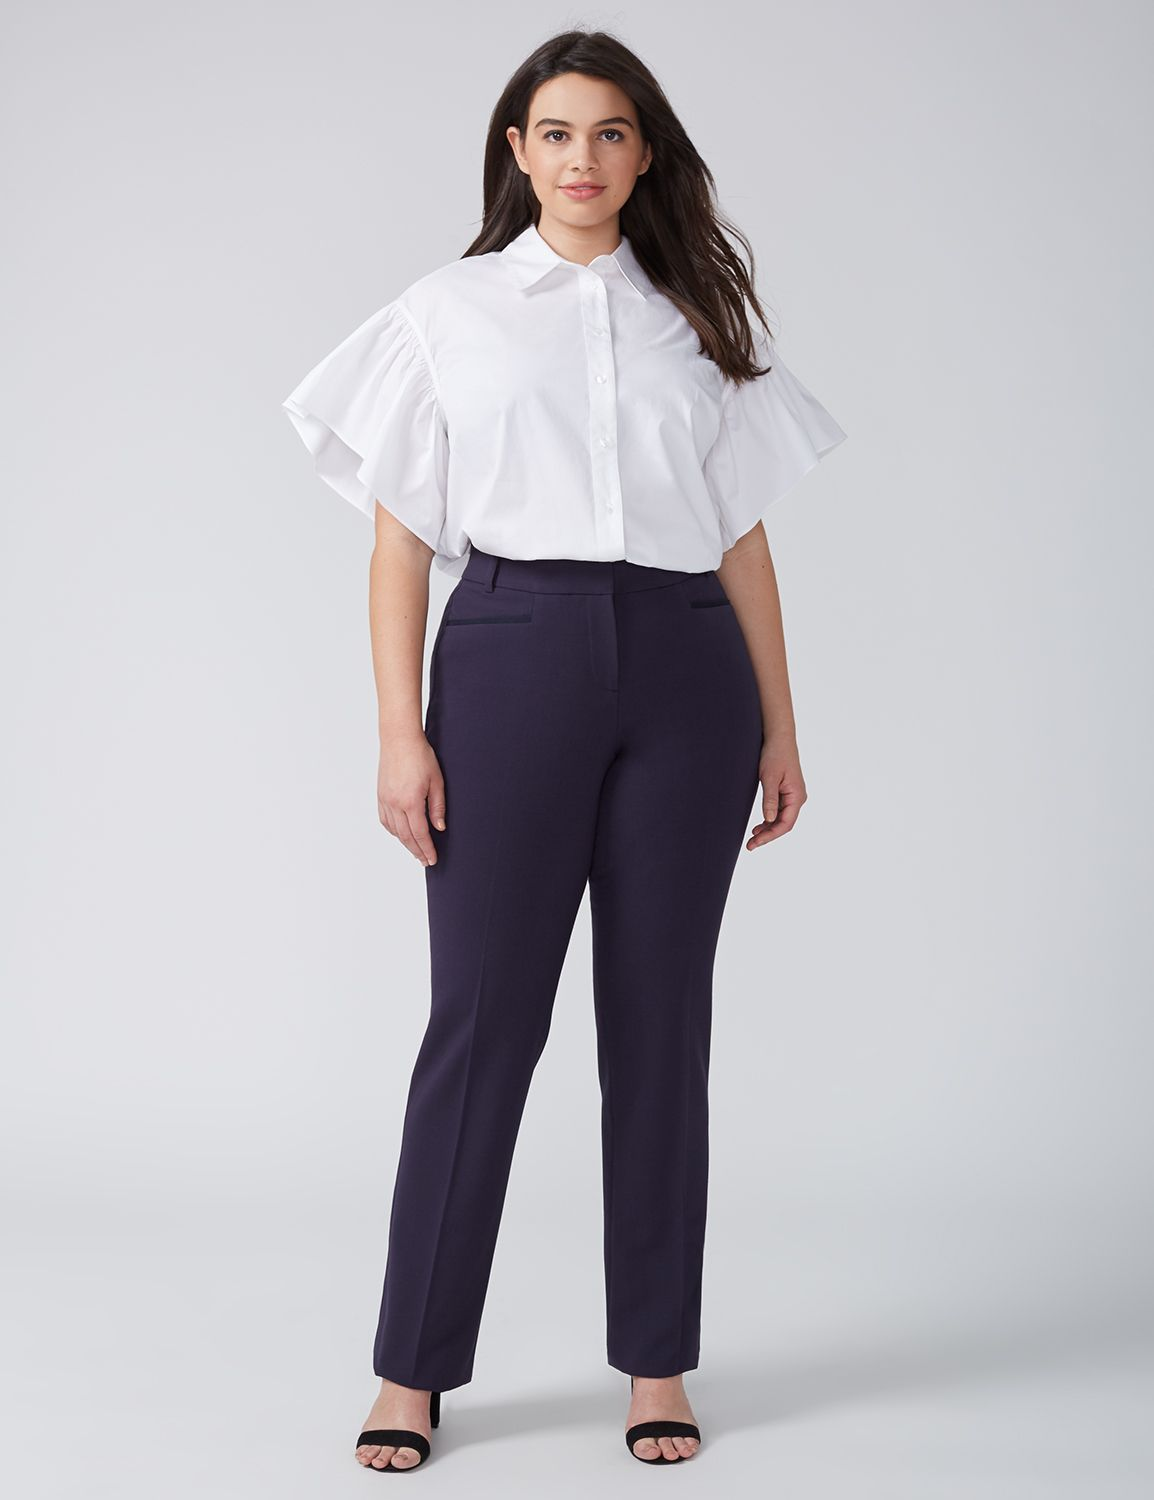 Lane Bryant Womens Lena Tailored Stretch Straight Leg Pant With T3 Technology 26 Night Sky